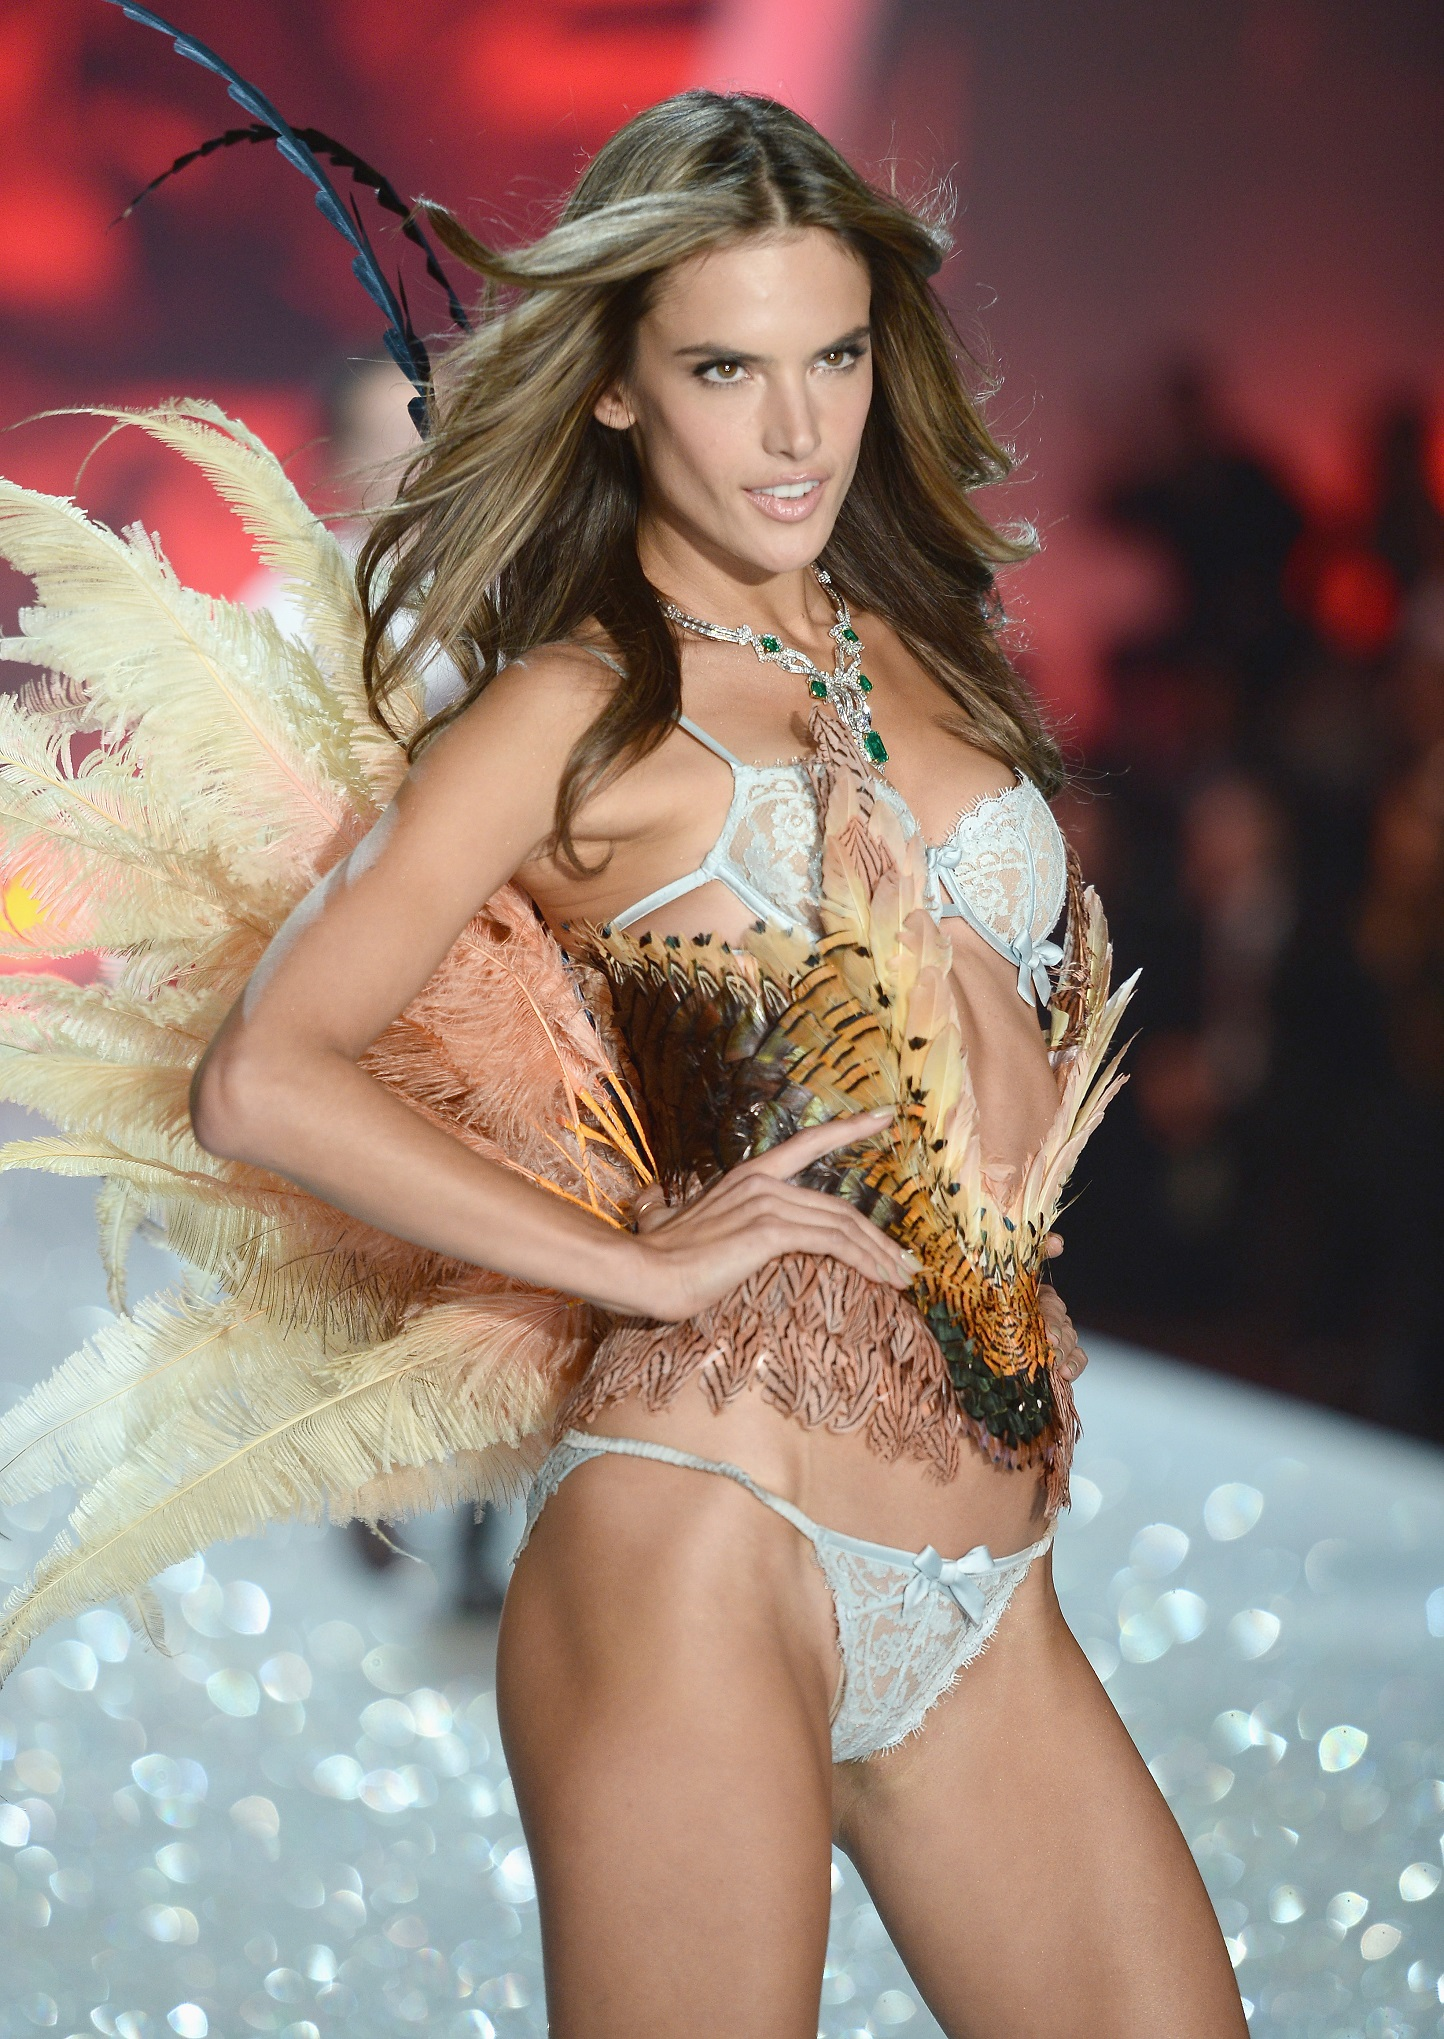 NEW YORK, NY - NOVEMBER 13: Model Alessandra Ambrosio walks the runway at the 2013 Victoria's Secret Fashion Show at Lexington Avenue Armory on November 13, 2013 in New York City. (Photo by Dimitrios Kambouris/Getty Images for Victoria's Secret)